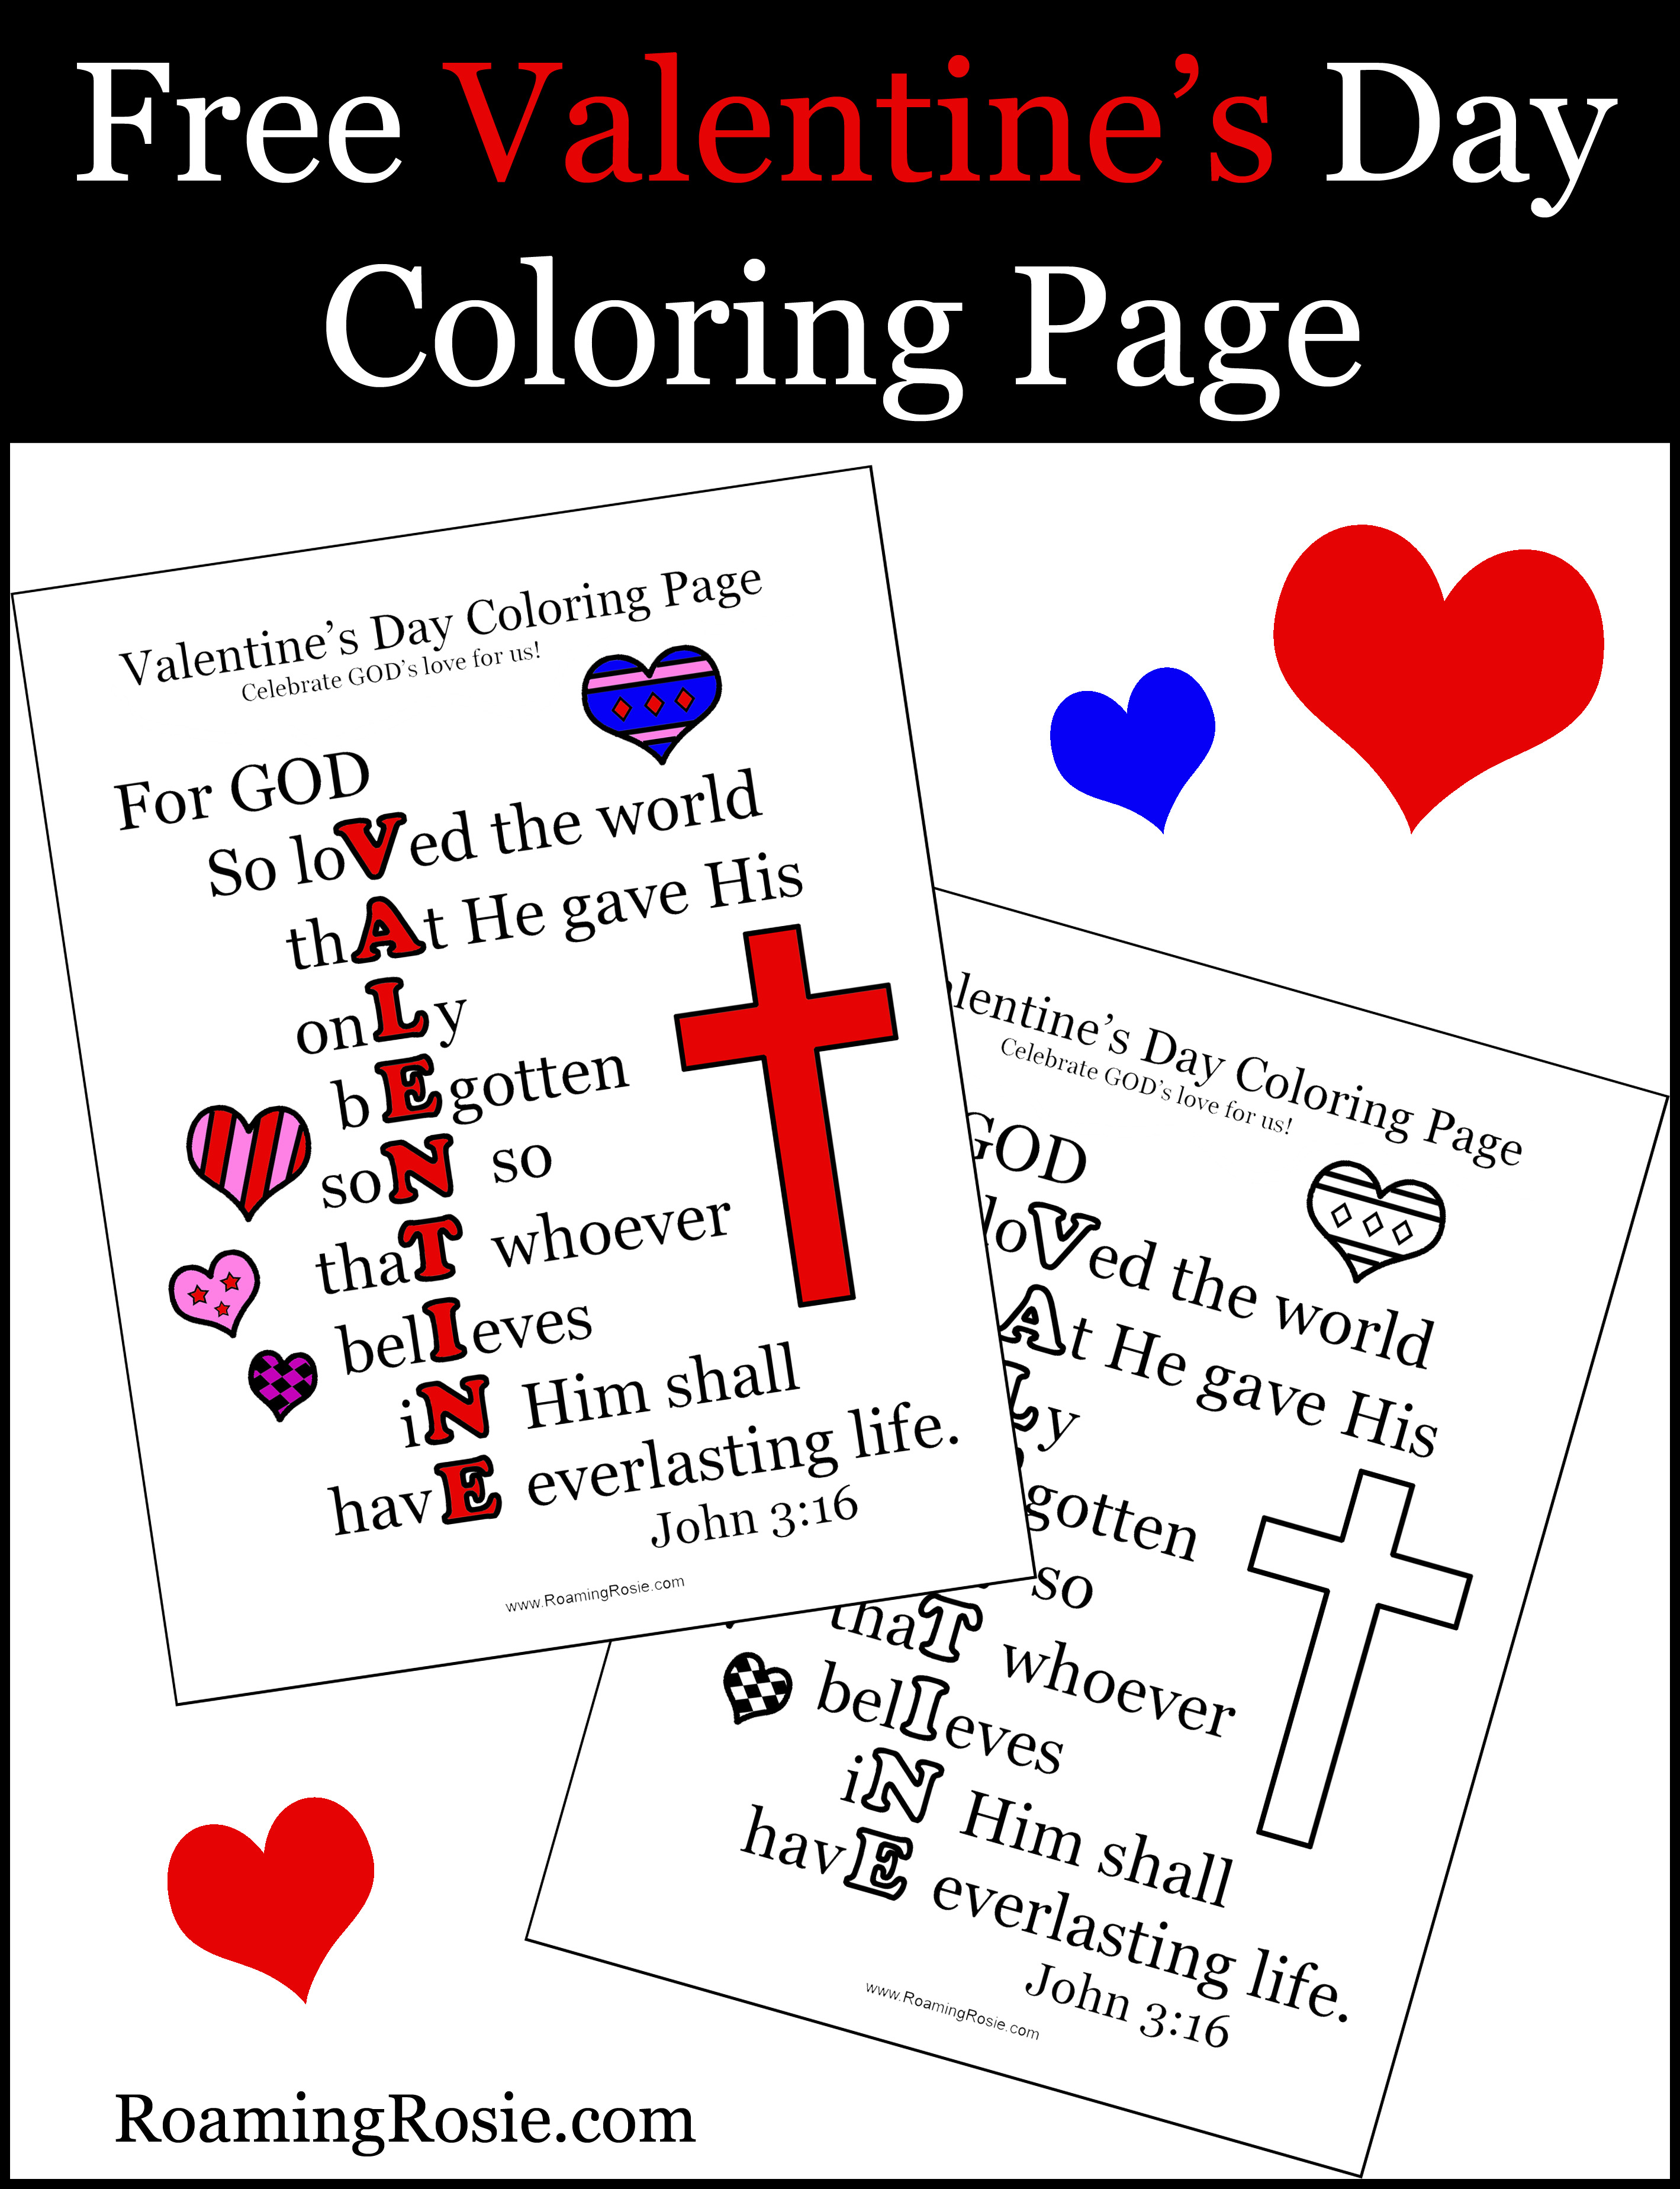 Valentine S Day Coloring Page With John 3 16 Quote